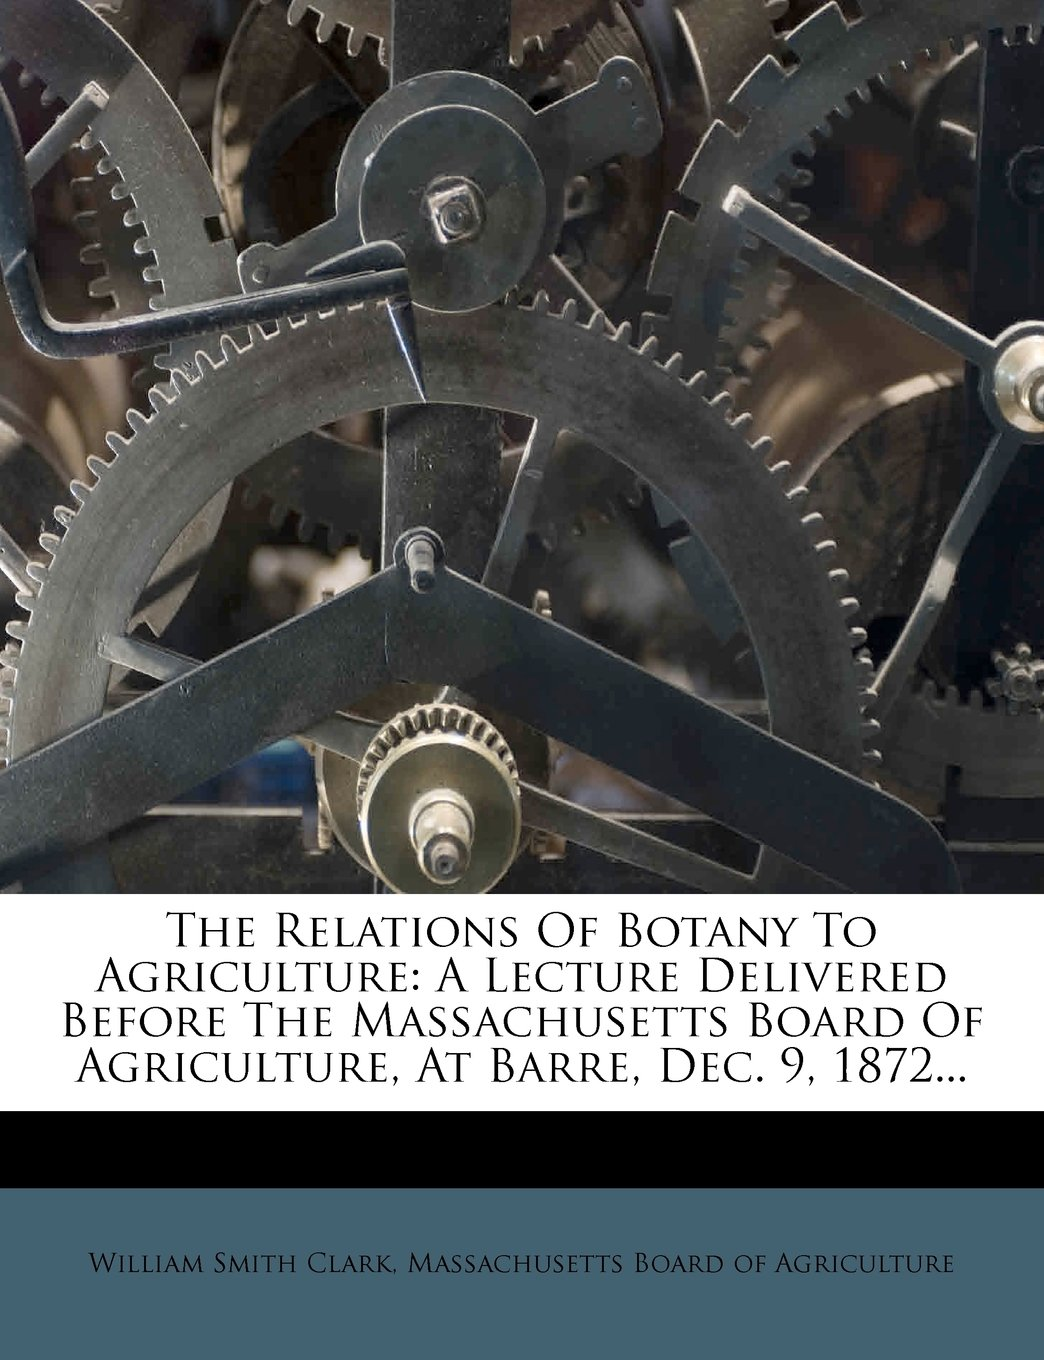 Download The Relations Of Botany To Agriculture: A Lecture Delivered Before The Massachusetts Board Of Agriculture, At Barre, Dec. 9, 1872... pdf